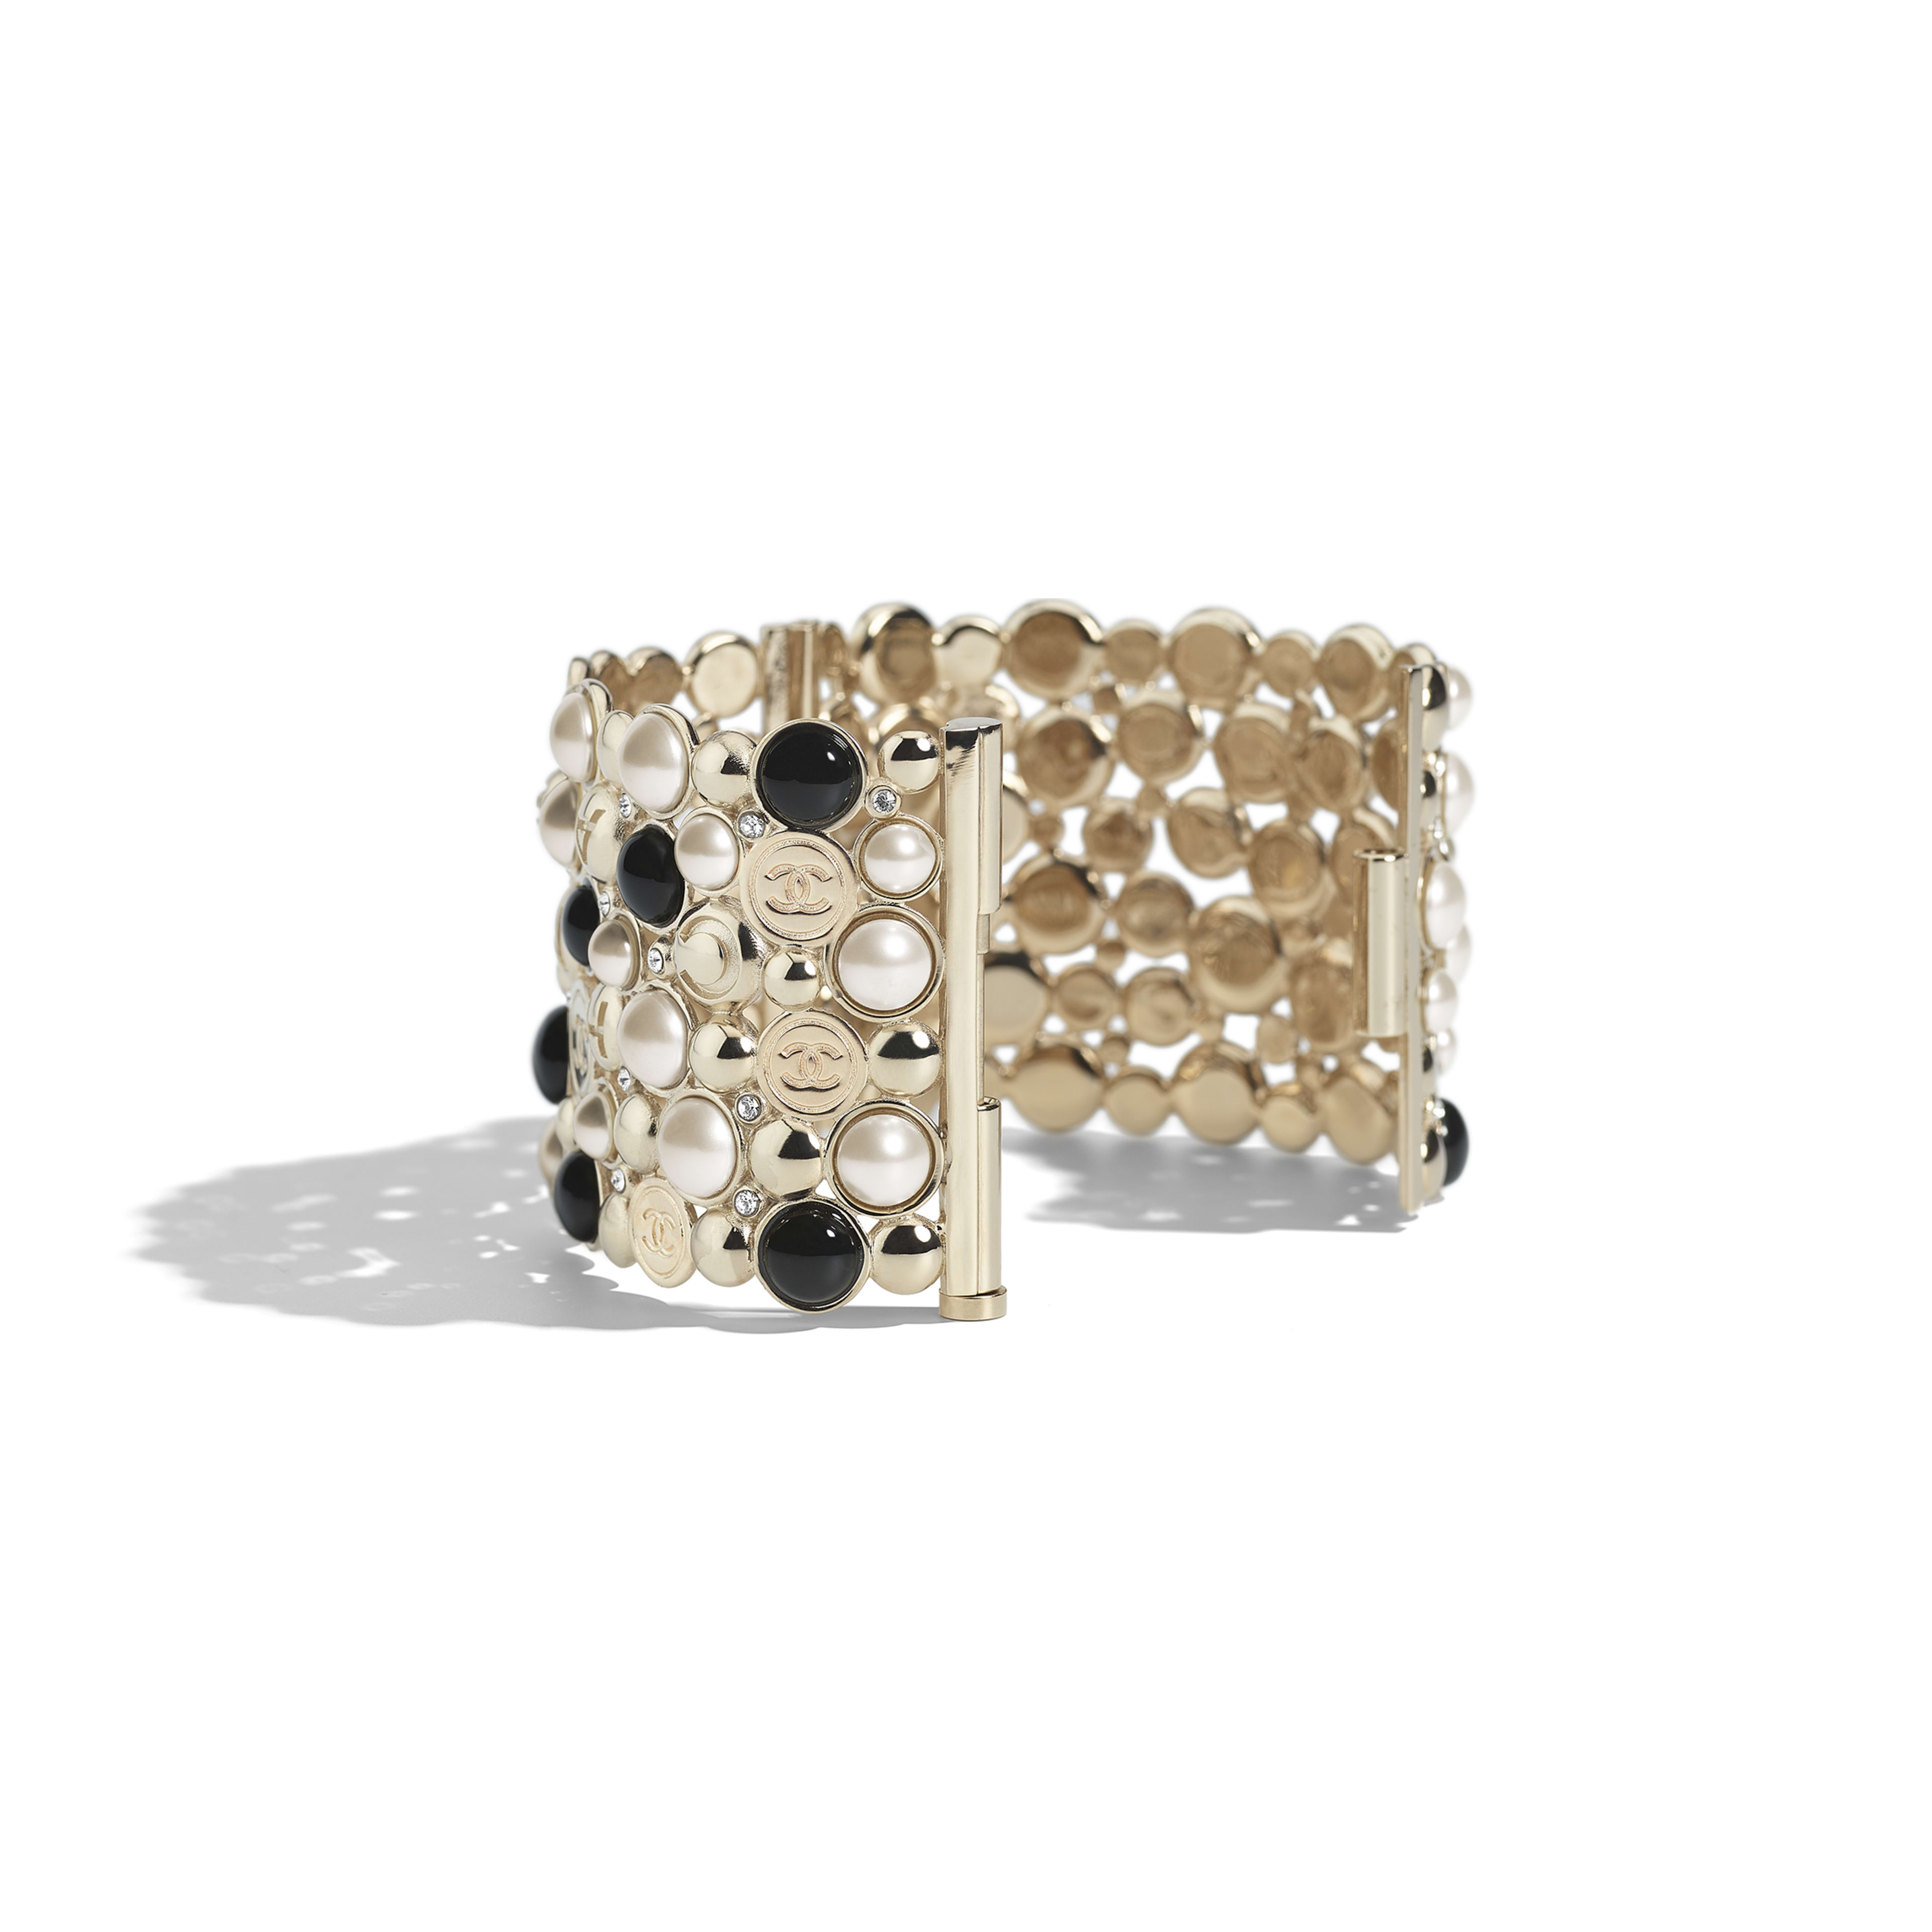 Cuff - Gold, Pearly White, Black & Crystal - Metal, Resin & Diamantés - Alternative view - see full sized version